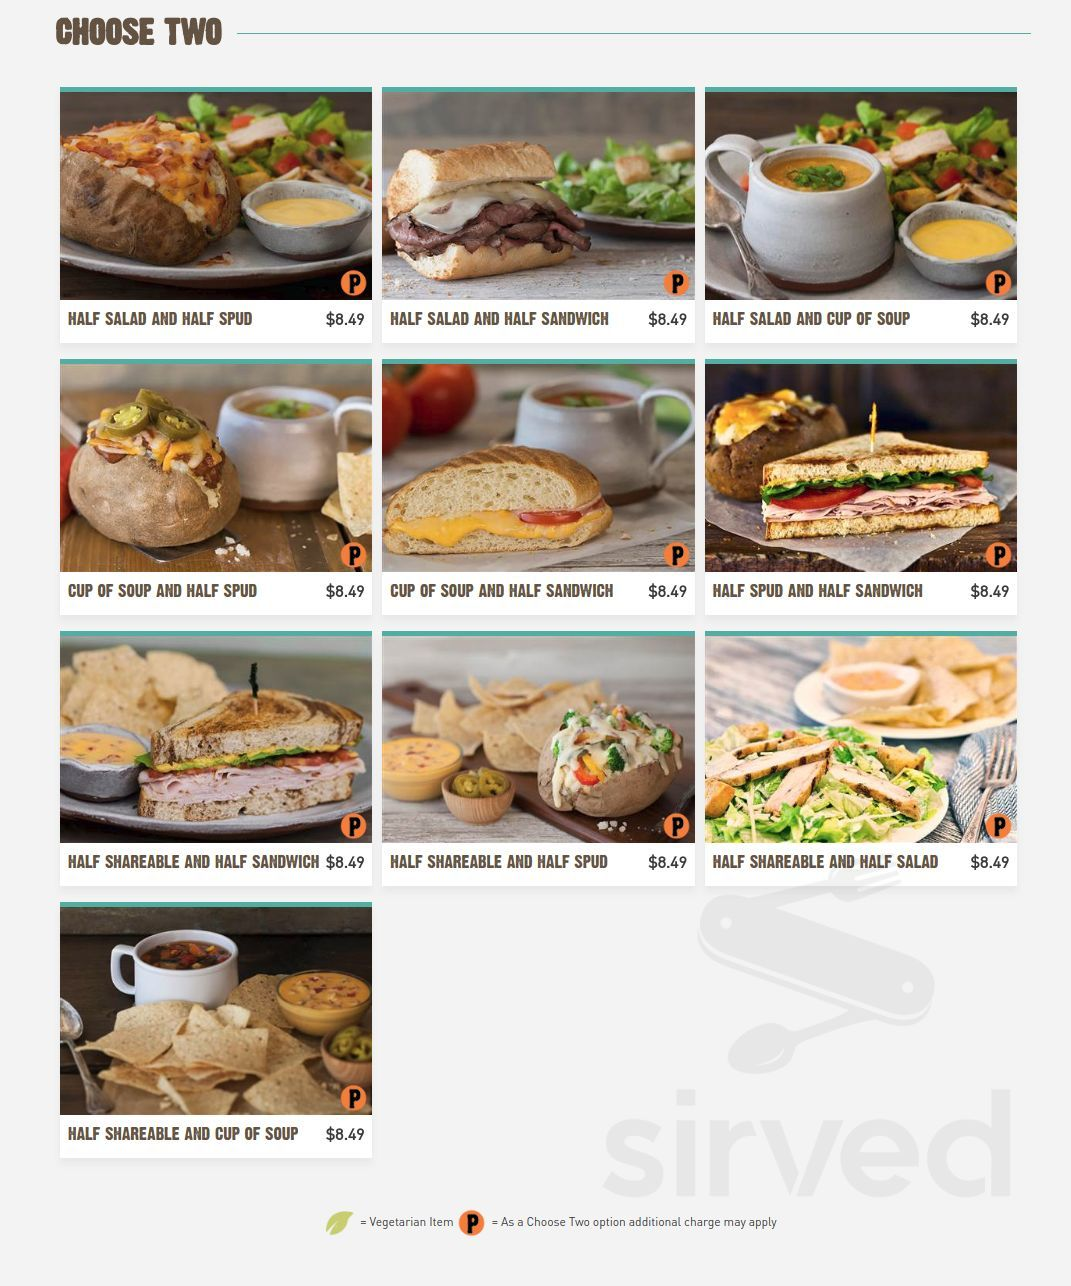 graphic about Mcalisters Deli Printable Menu titled Menu for McAlisters Deli inside Dayton, Ohio, United states of america